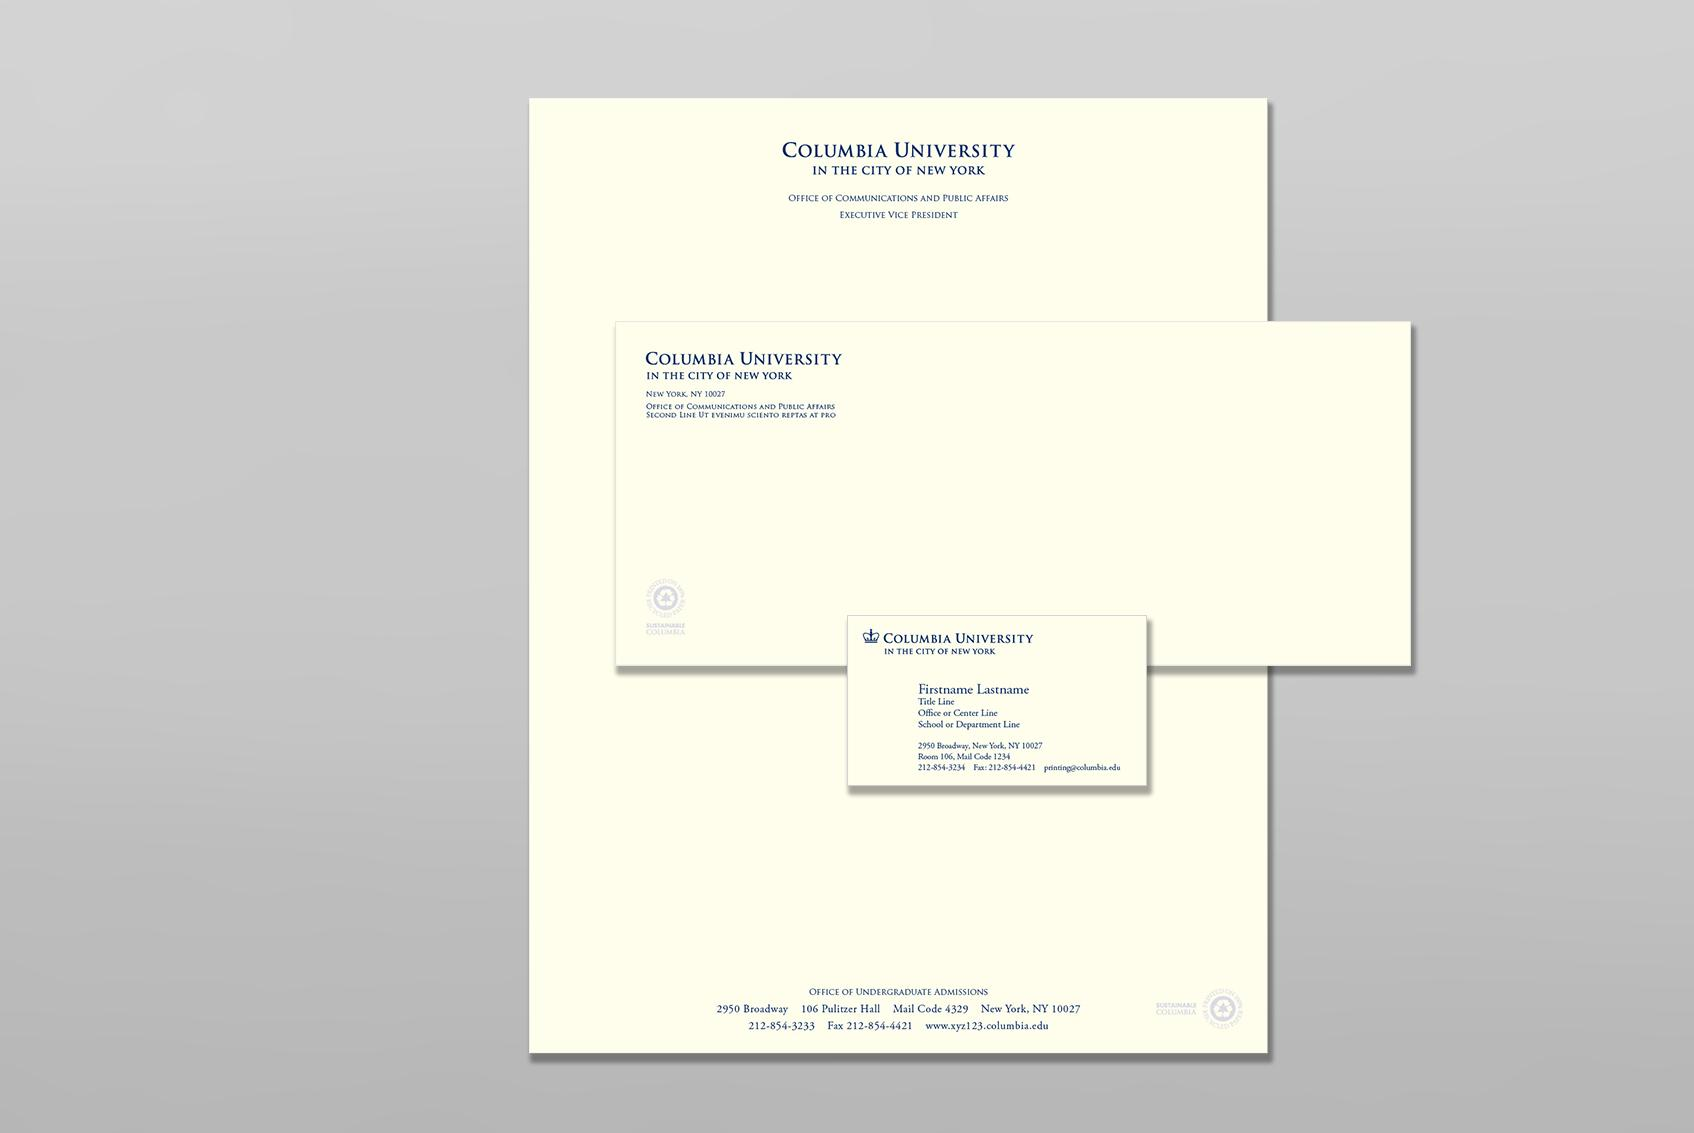 Columbia University stationery sample